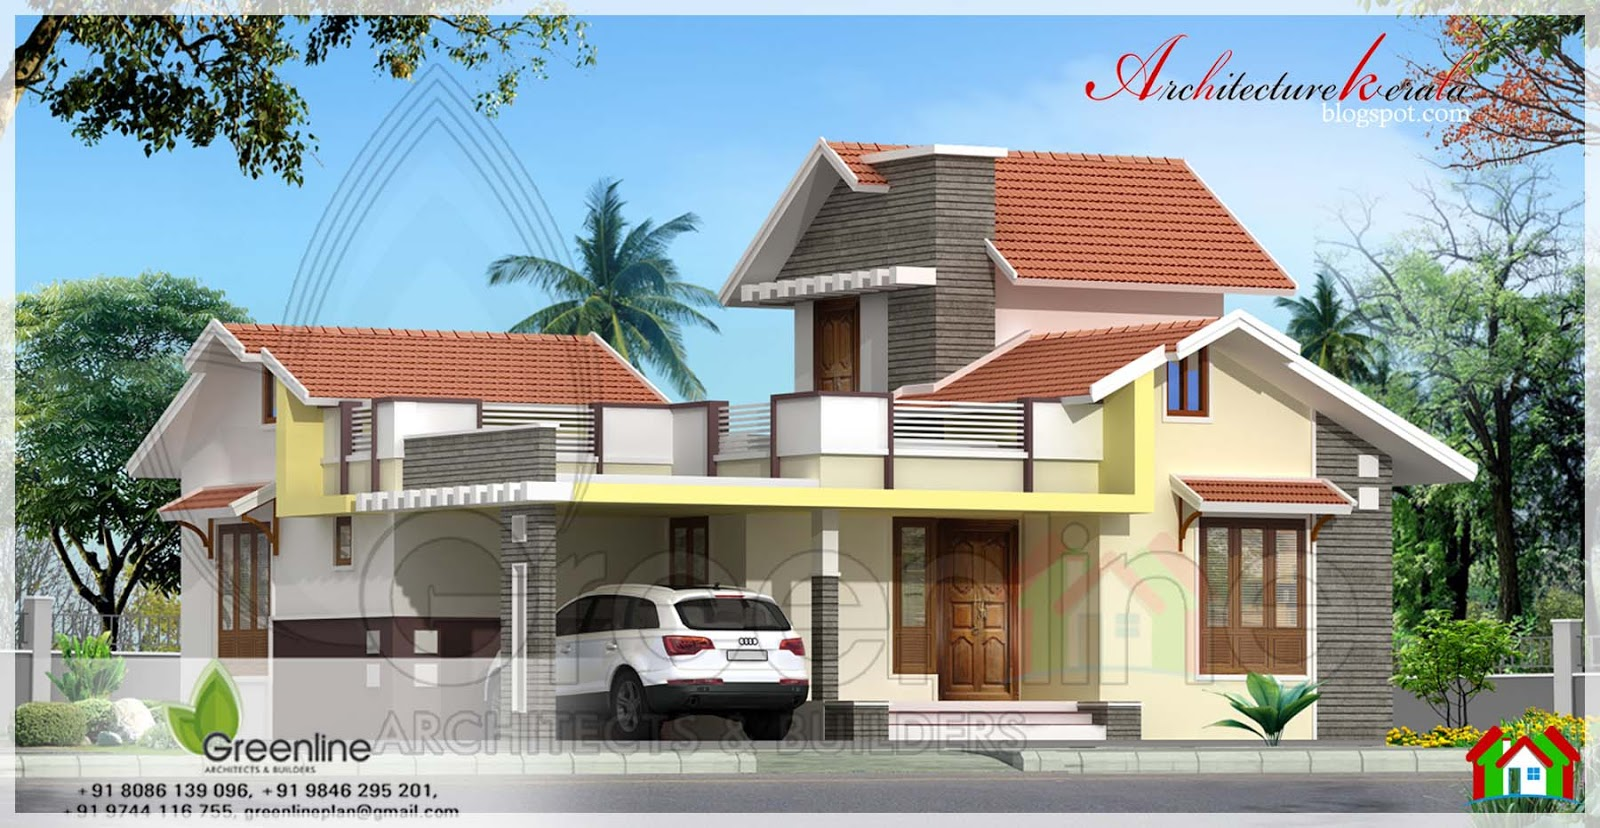 1250 square feet 3 bedroom kerala house architecture kerala for Kerala home style 3 bedroom